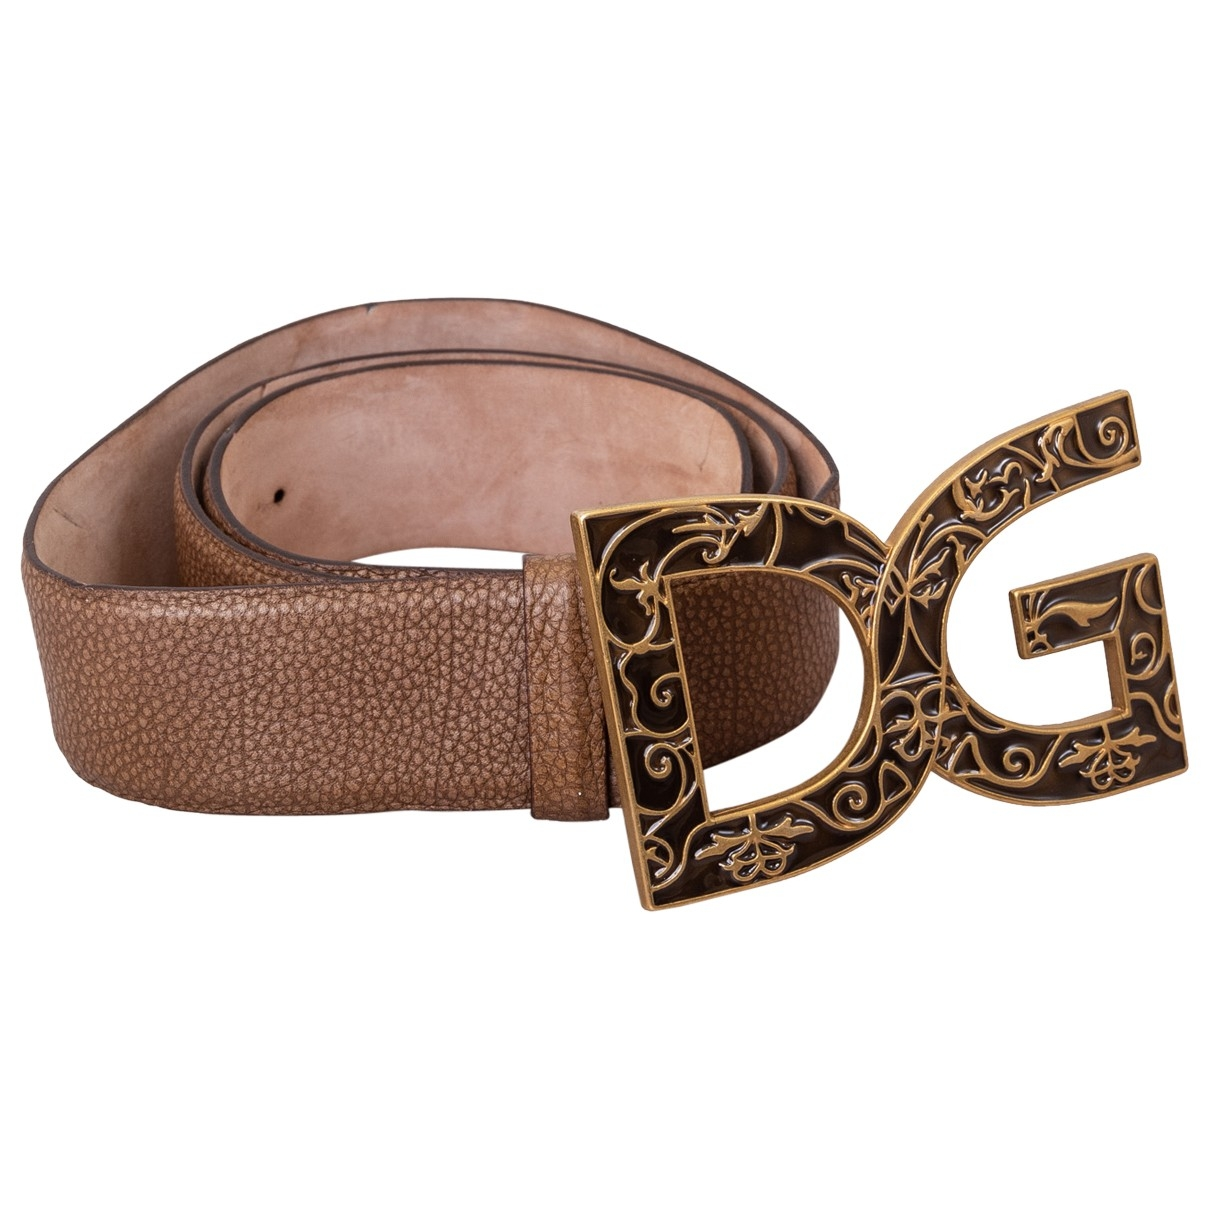 Dolce & Gabbana \N Brown Leather belt for Women M International